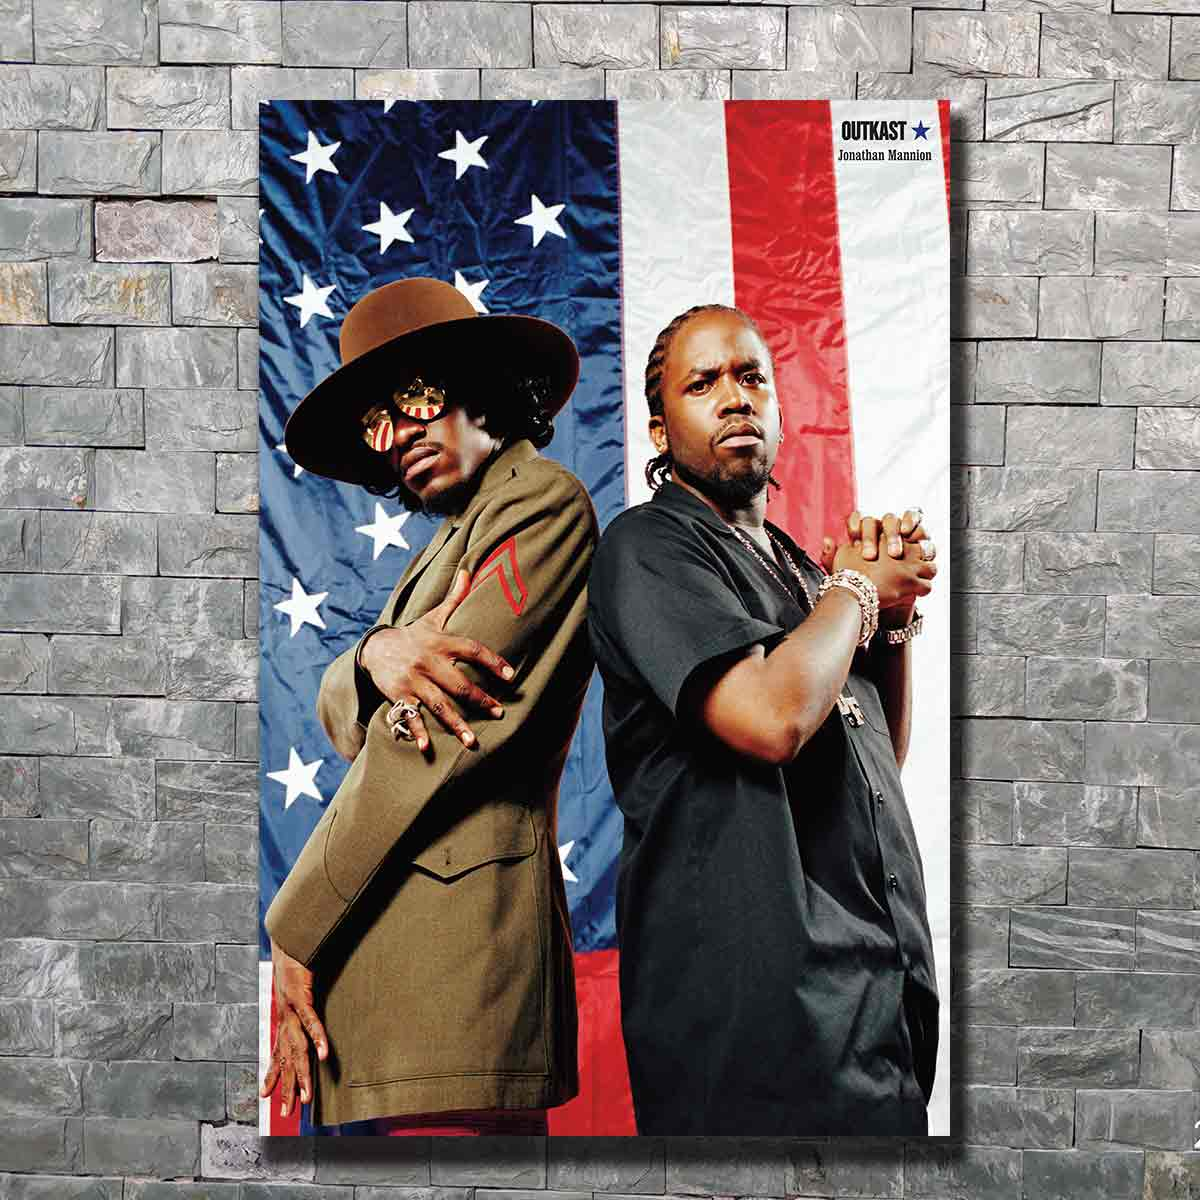 OUTKAST Stankonia Hip Hop Duo Album Art Poster custom Home Wall decor 8x1212x18 24x36canvas living roomdecoration image